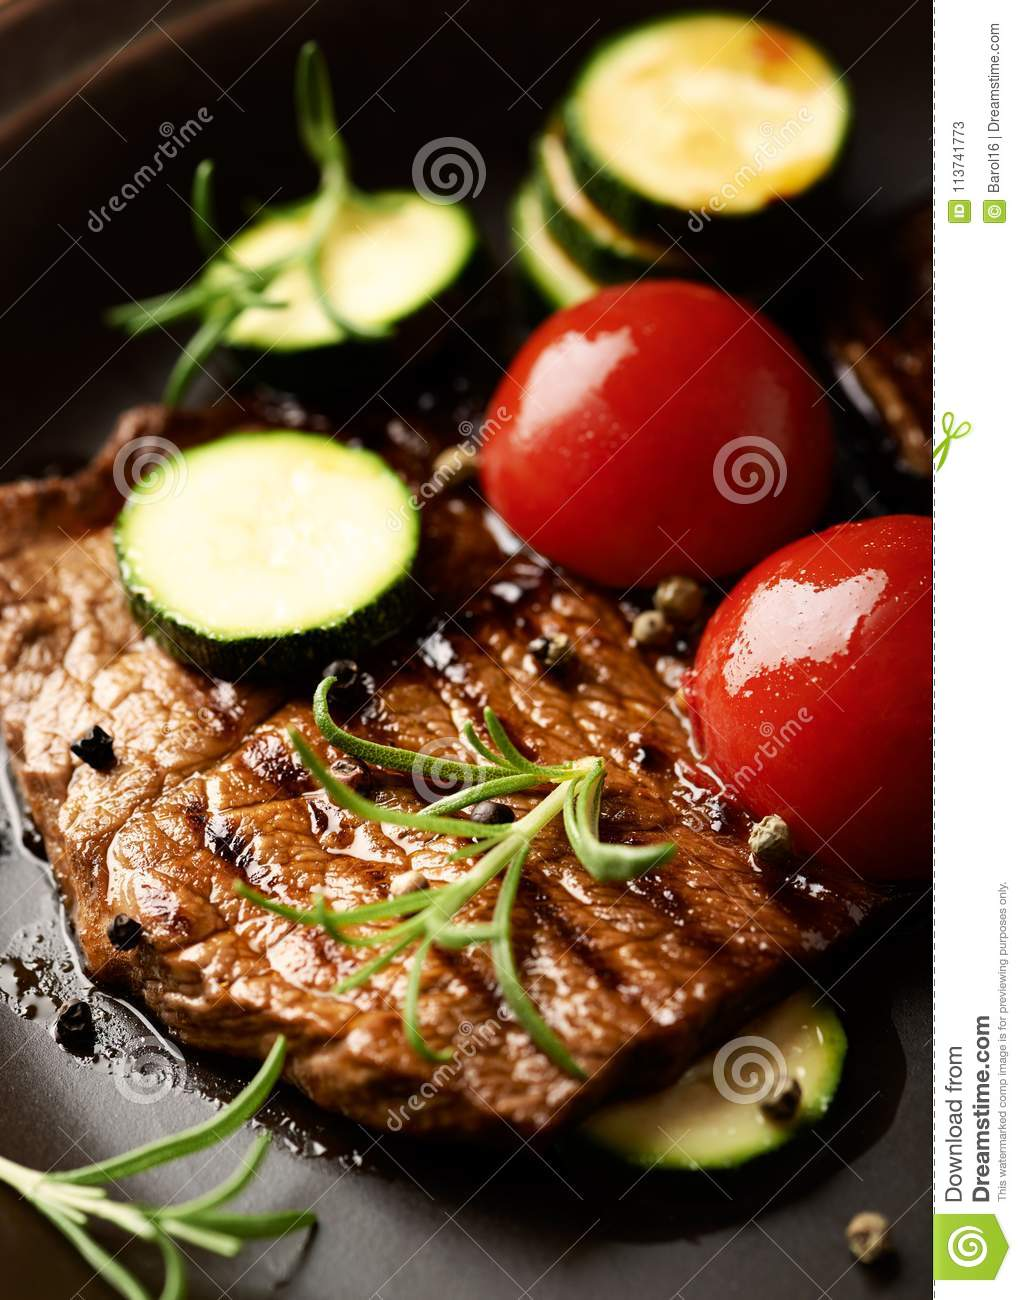 Grilled beef steak with vegetables .